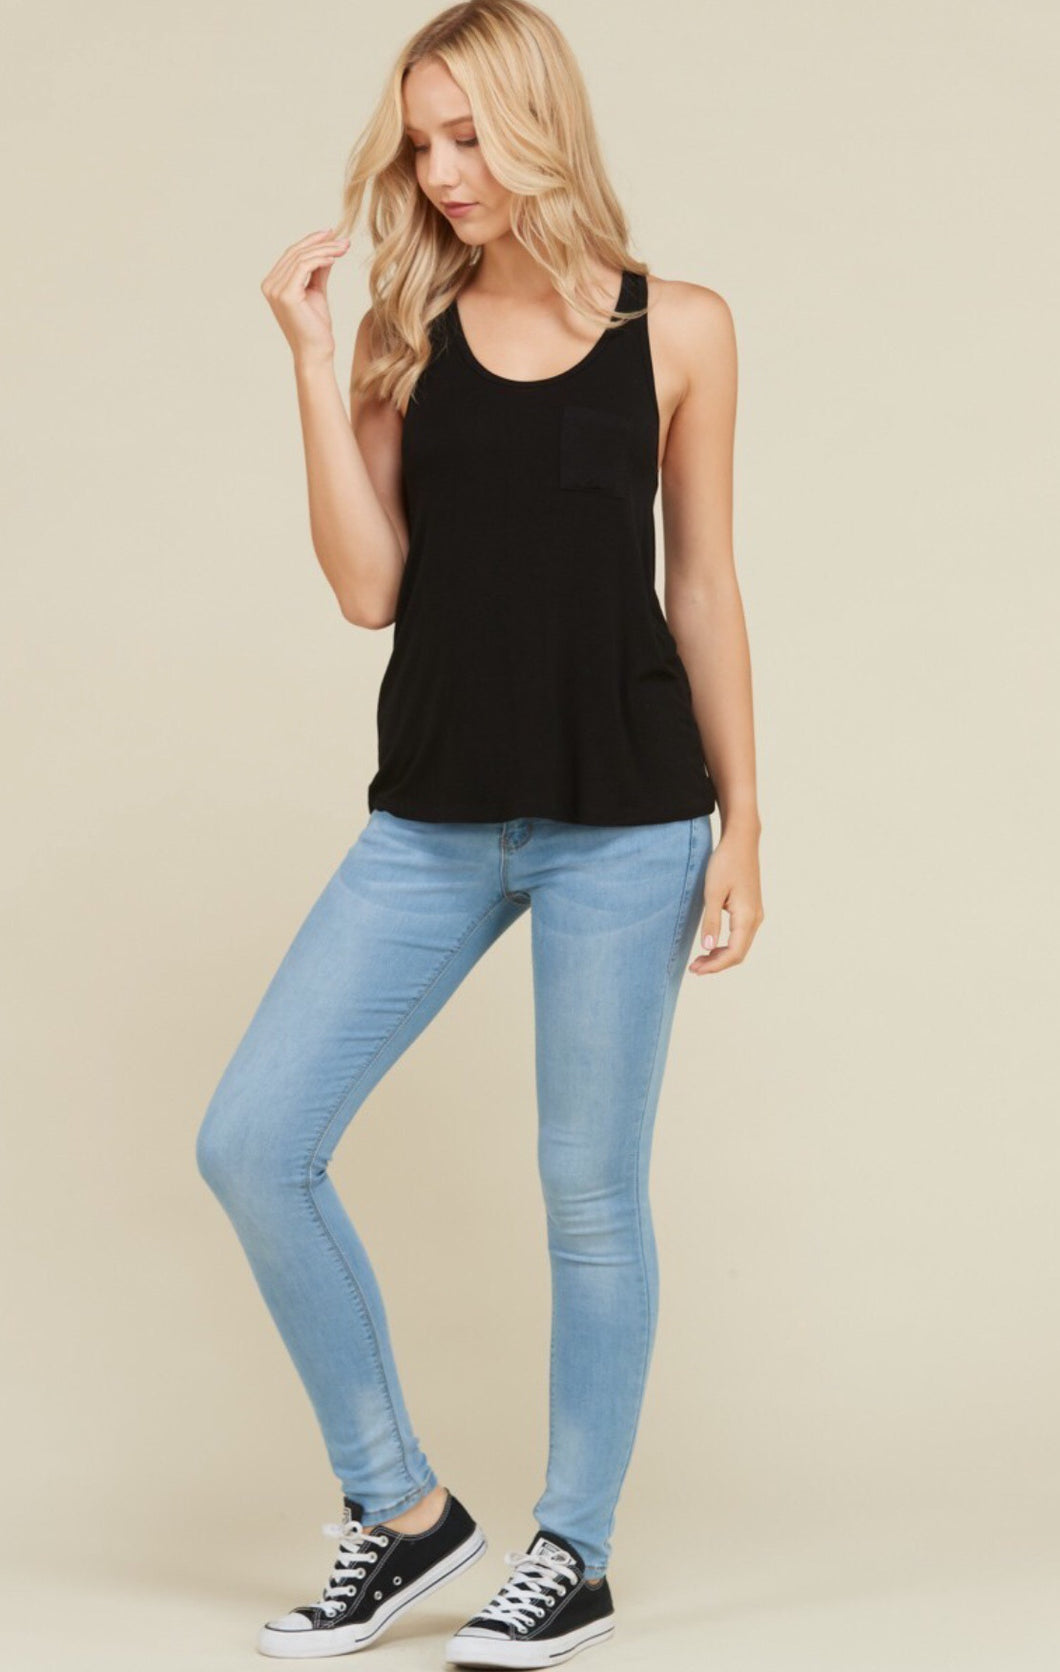 The Pocket Tank - Black